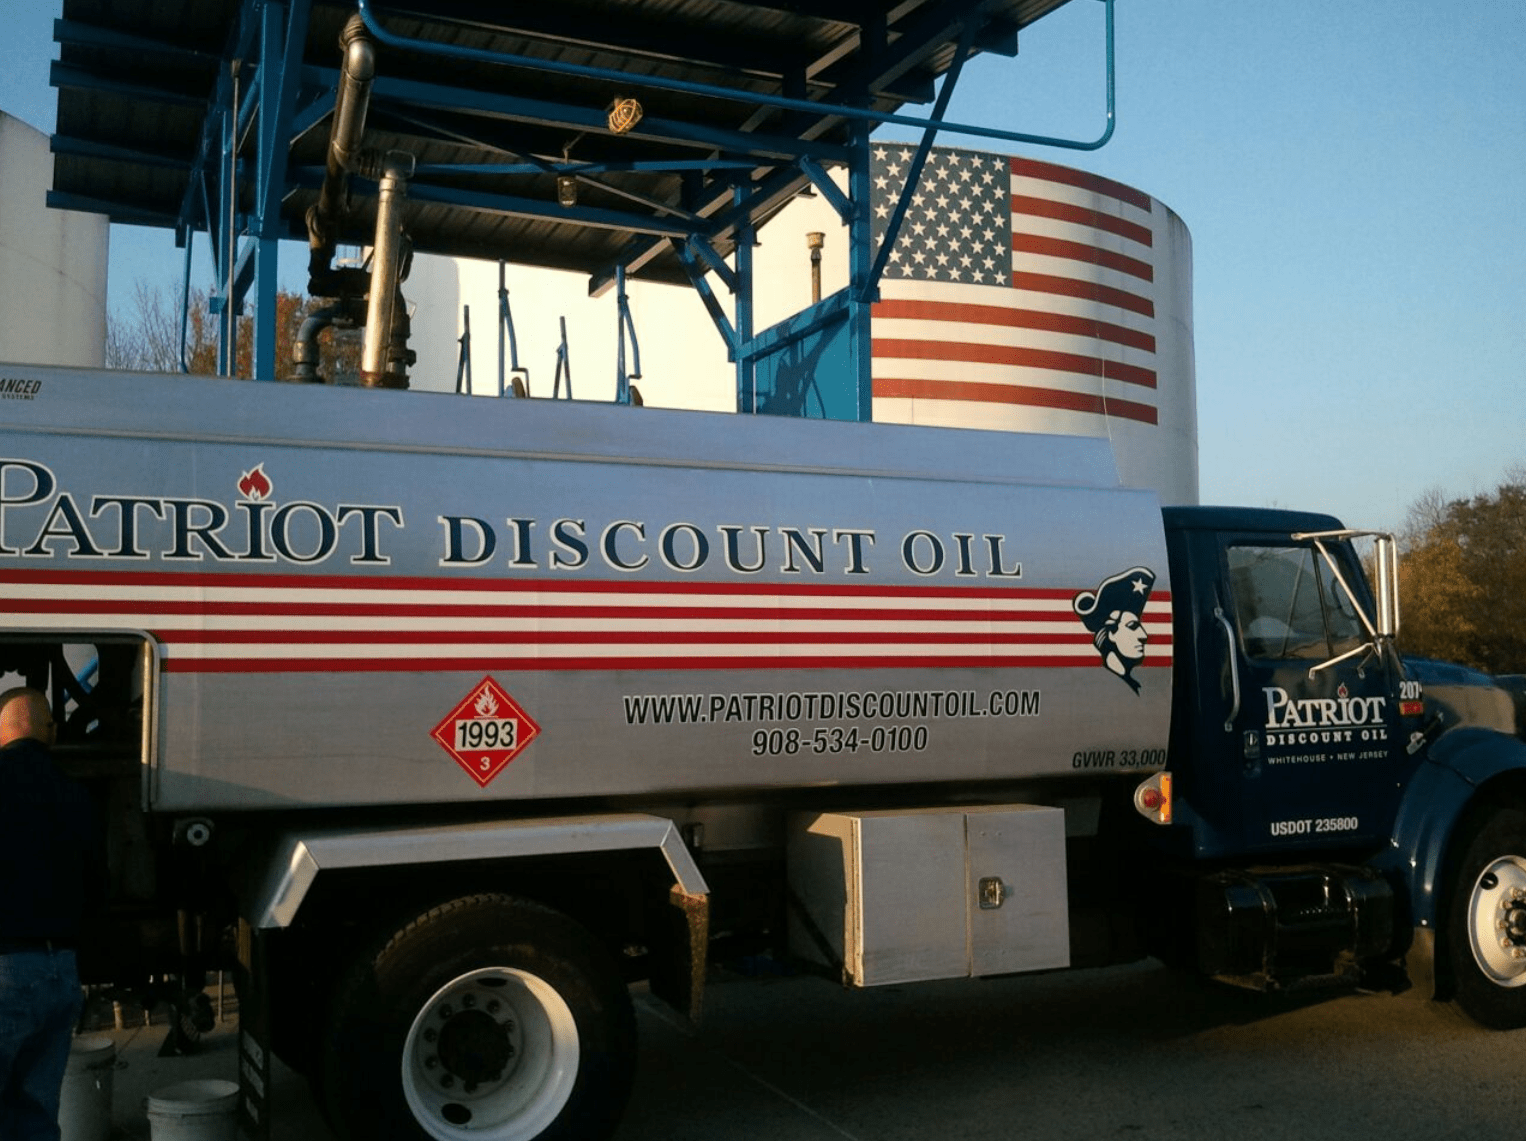 patriot discount oil company truck